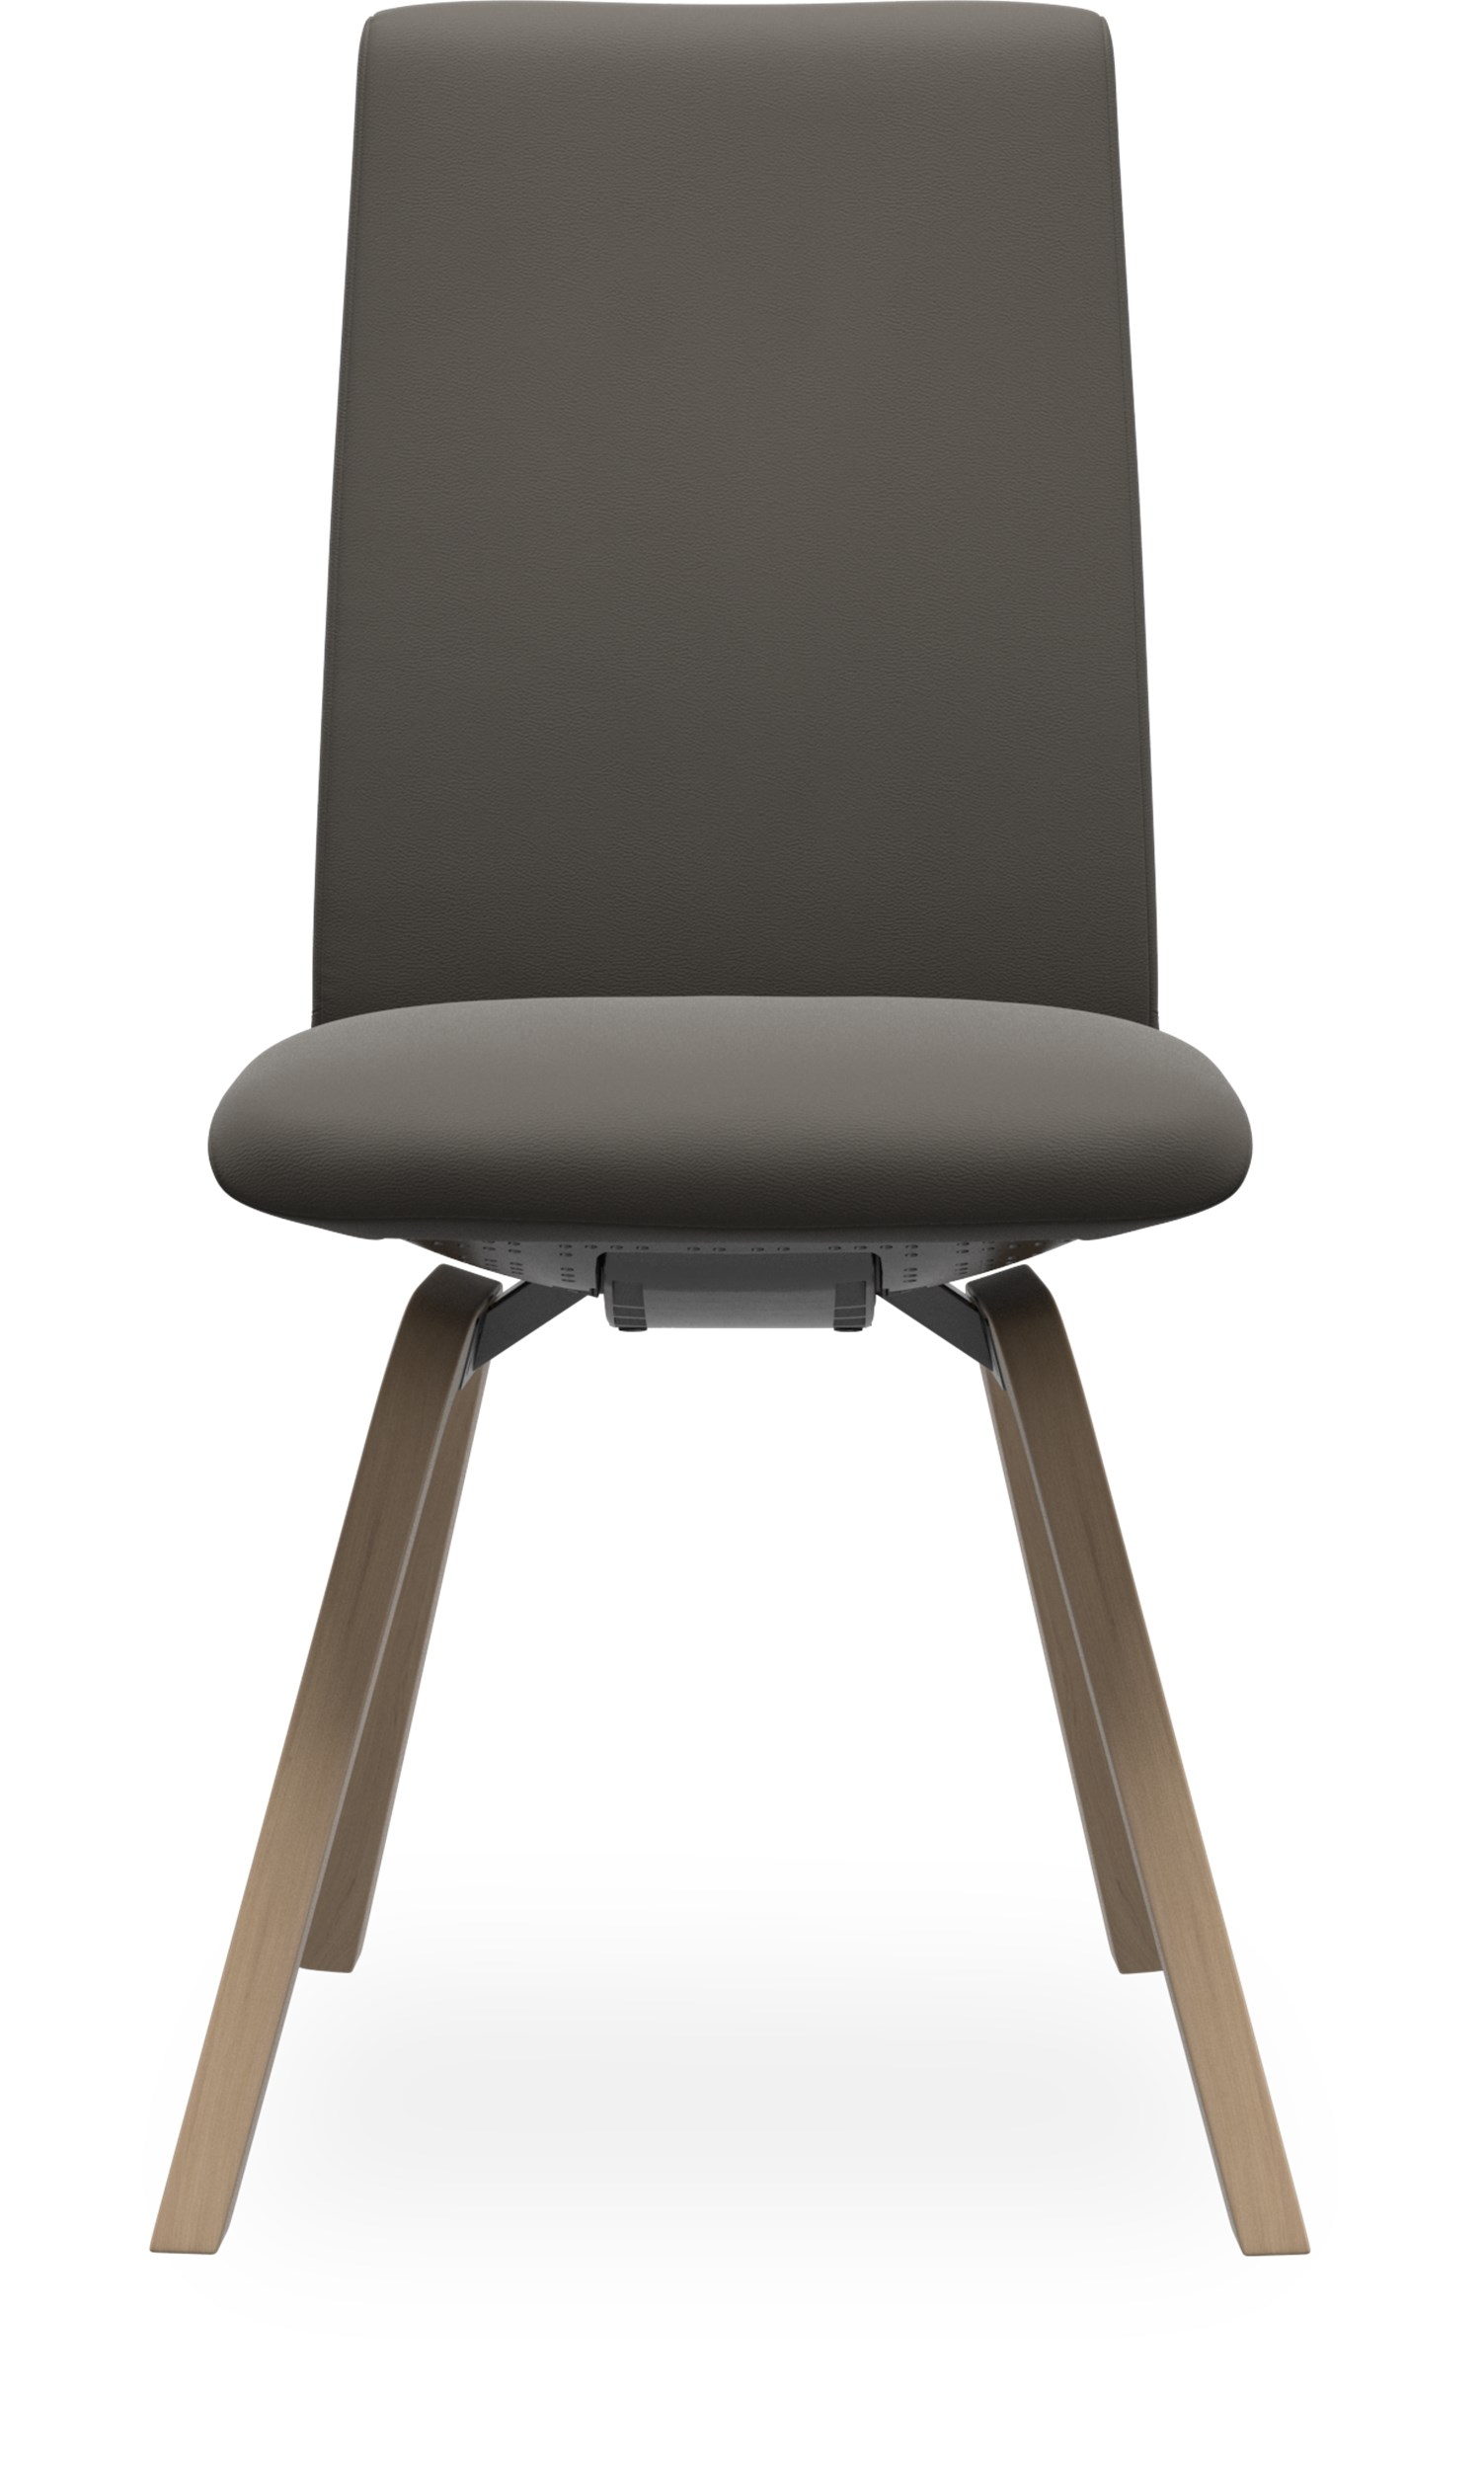 Stressless M D200 Laurel low matstol - Paloma 9416 Metal Grey läder och stomme i lackerat ekfaner